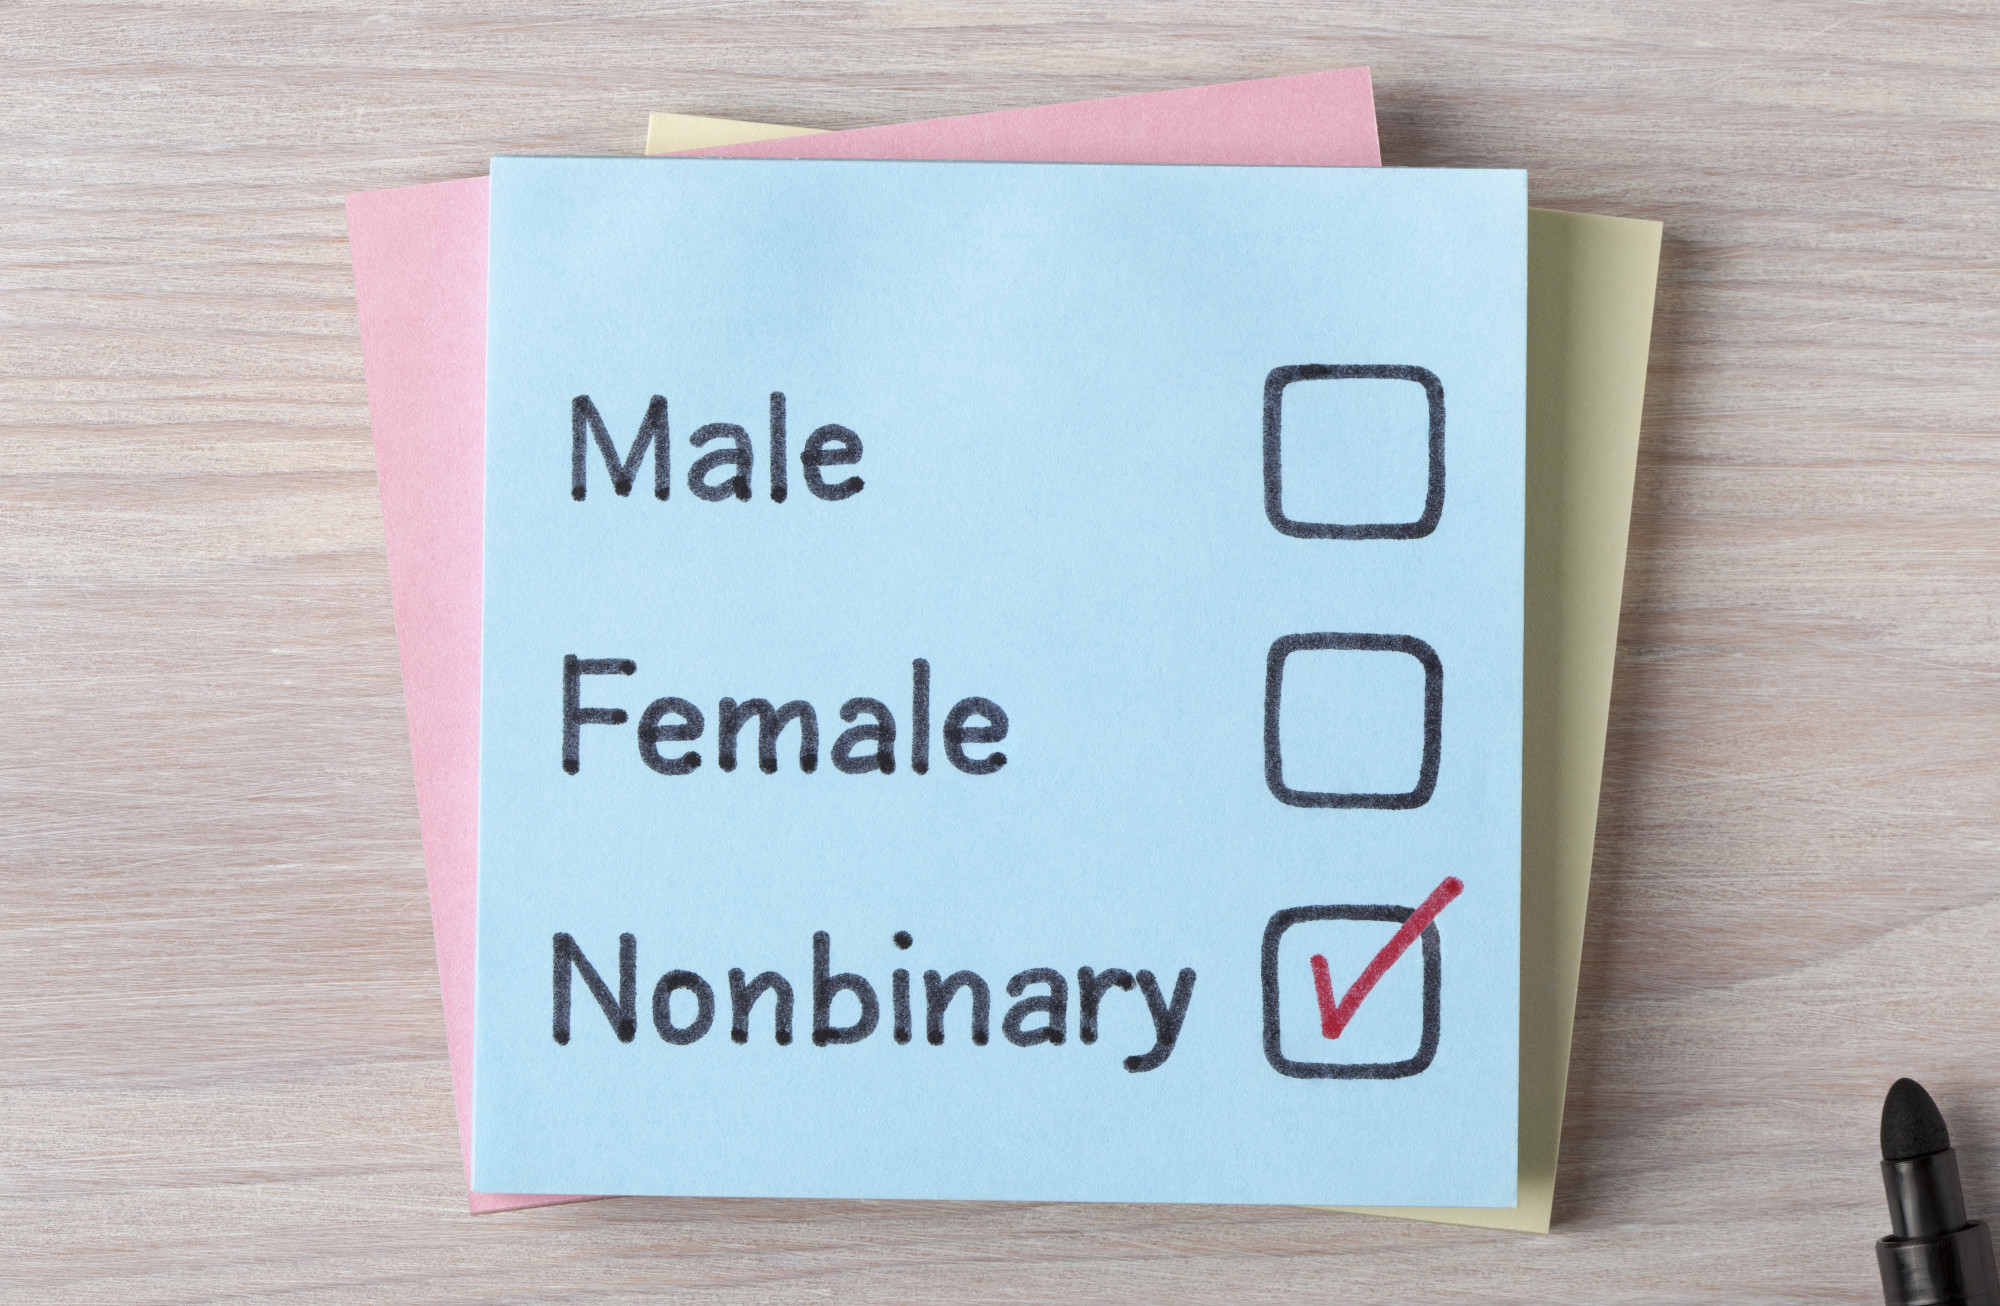 Gender Neutral Terms and Pronouns: How to Use Them the Right Way